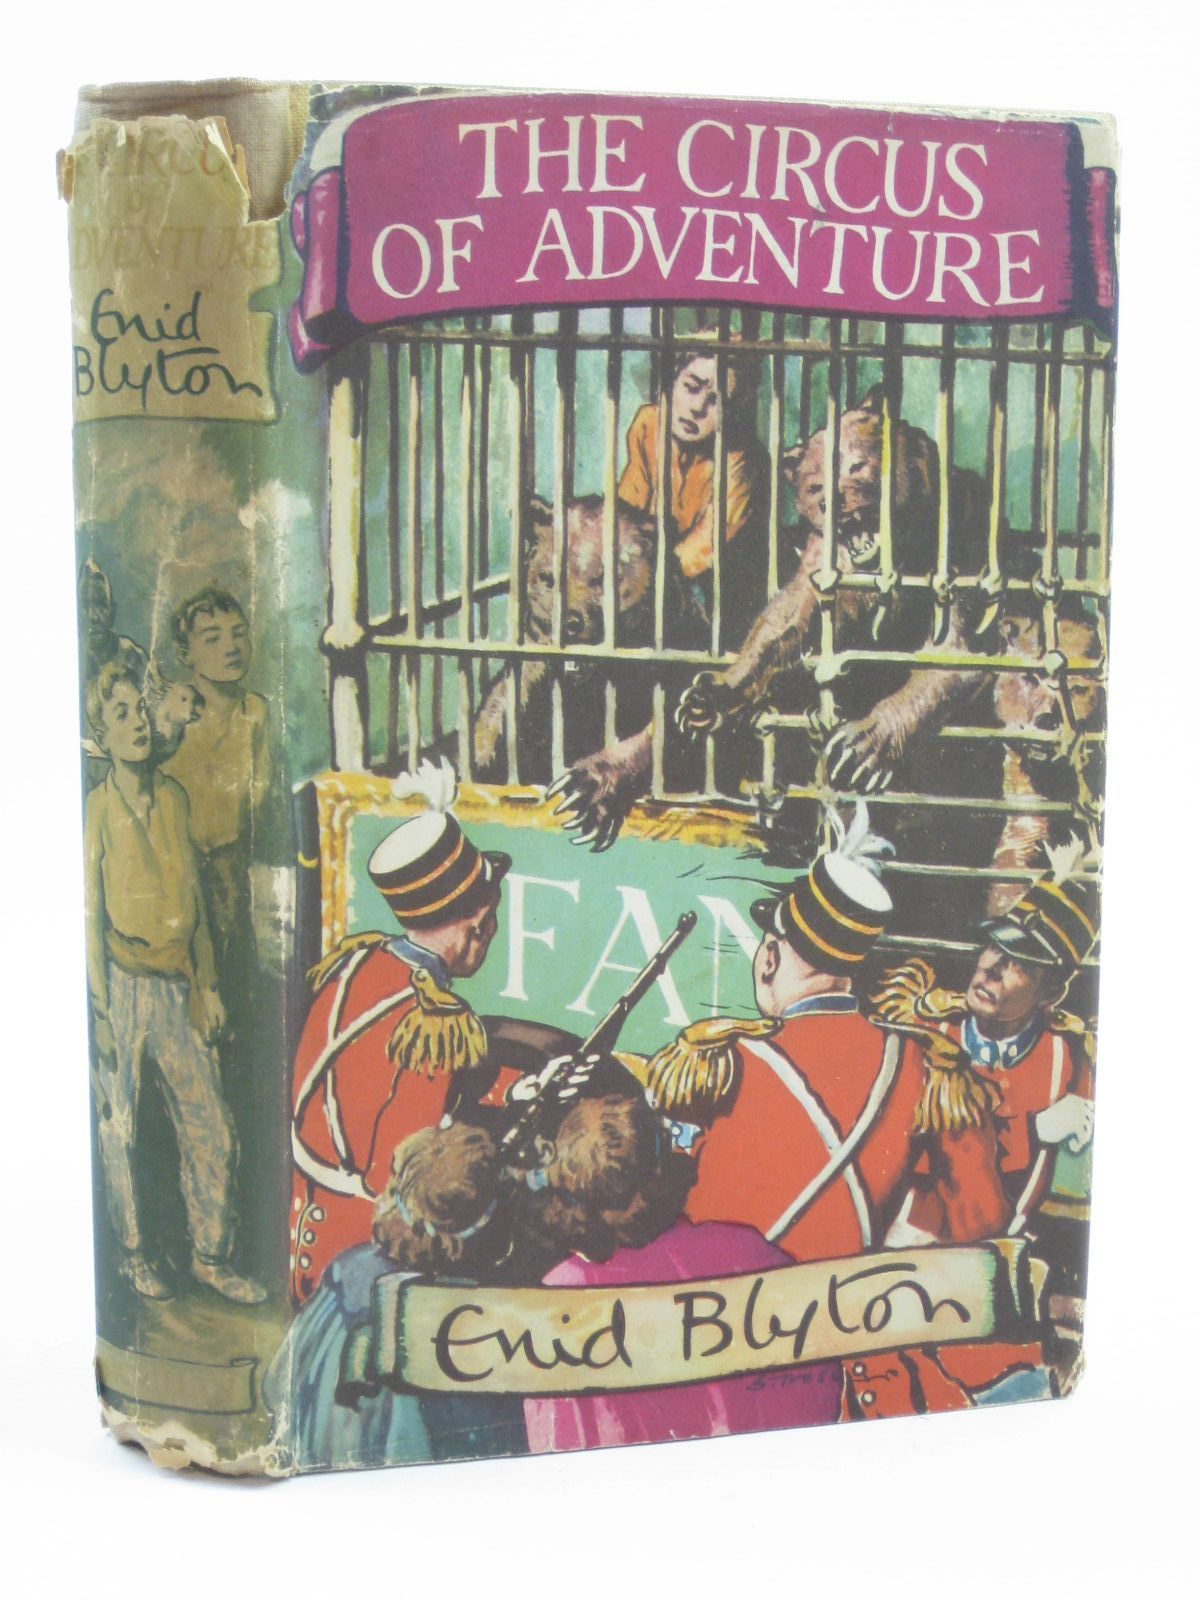 Photo of THE CIRCUS OF ADVENTURE written by Blyton, Enid illustrated by Tresilian, Stuart published by Macmillan & Co. Ltd. (STOCK CODE: 1316496)  for sale by Stella & Rose's Books